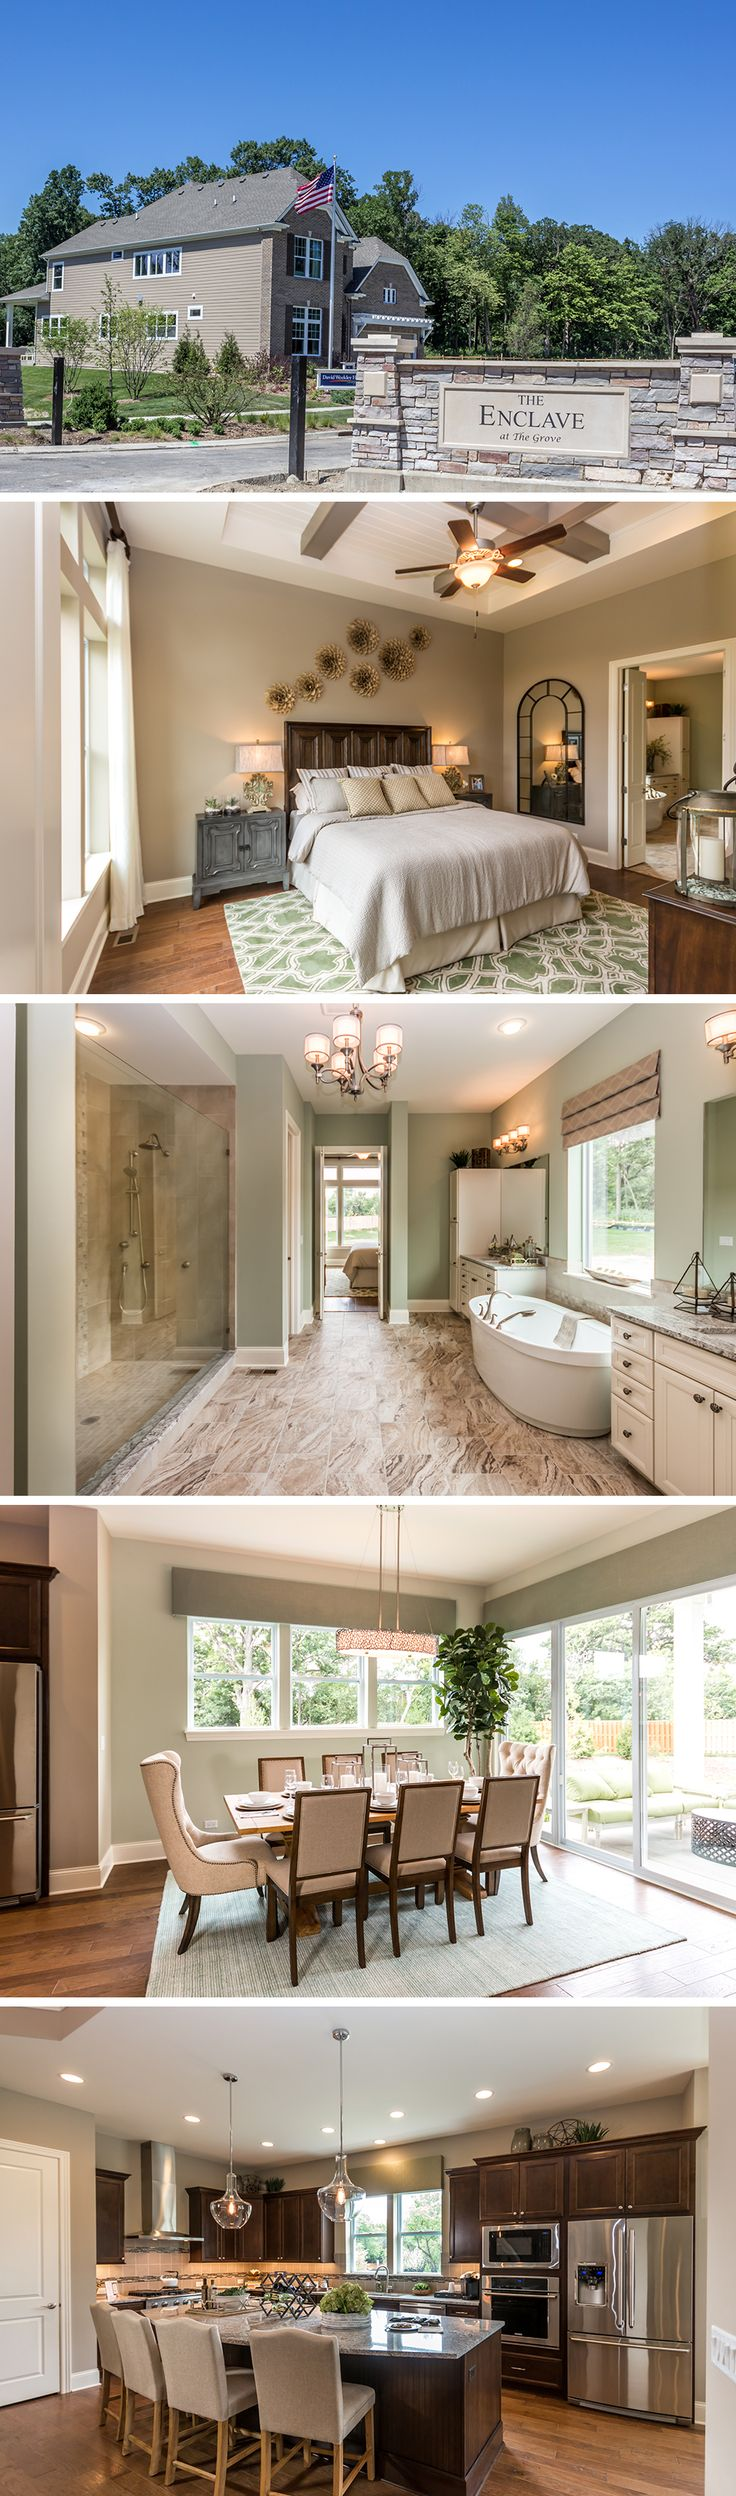 Sumptuous tudor style homes method philadelphia traditional bathroom - The Martinwood By David Weekley Homes In Enclave At The Grove Is A 4 Bedroom Home